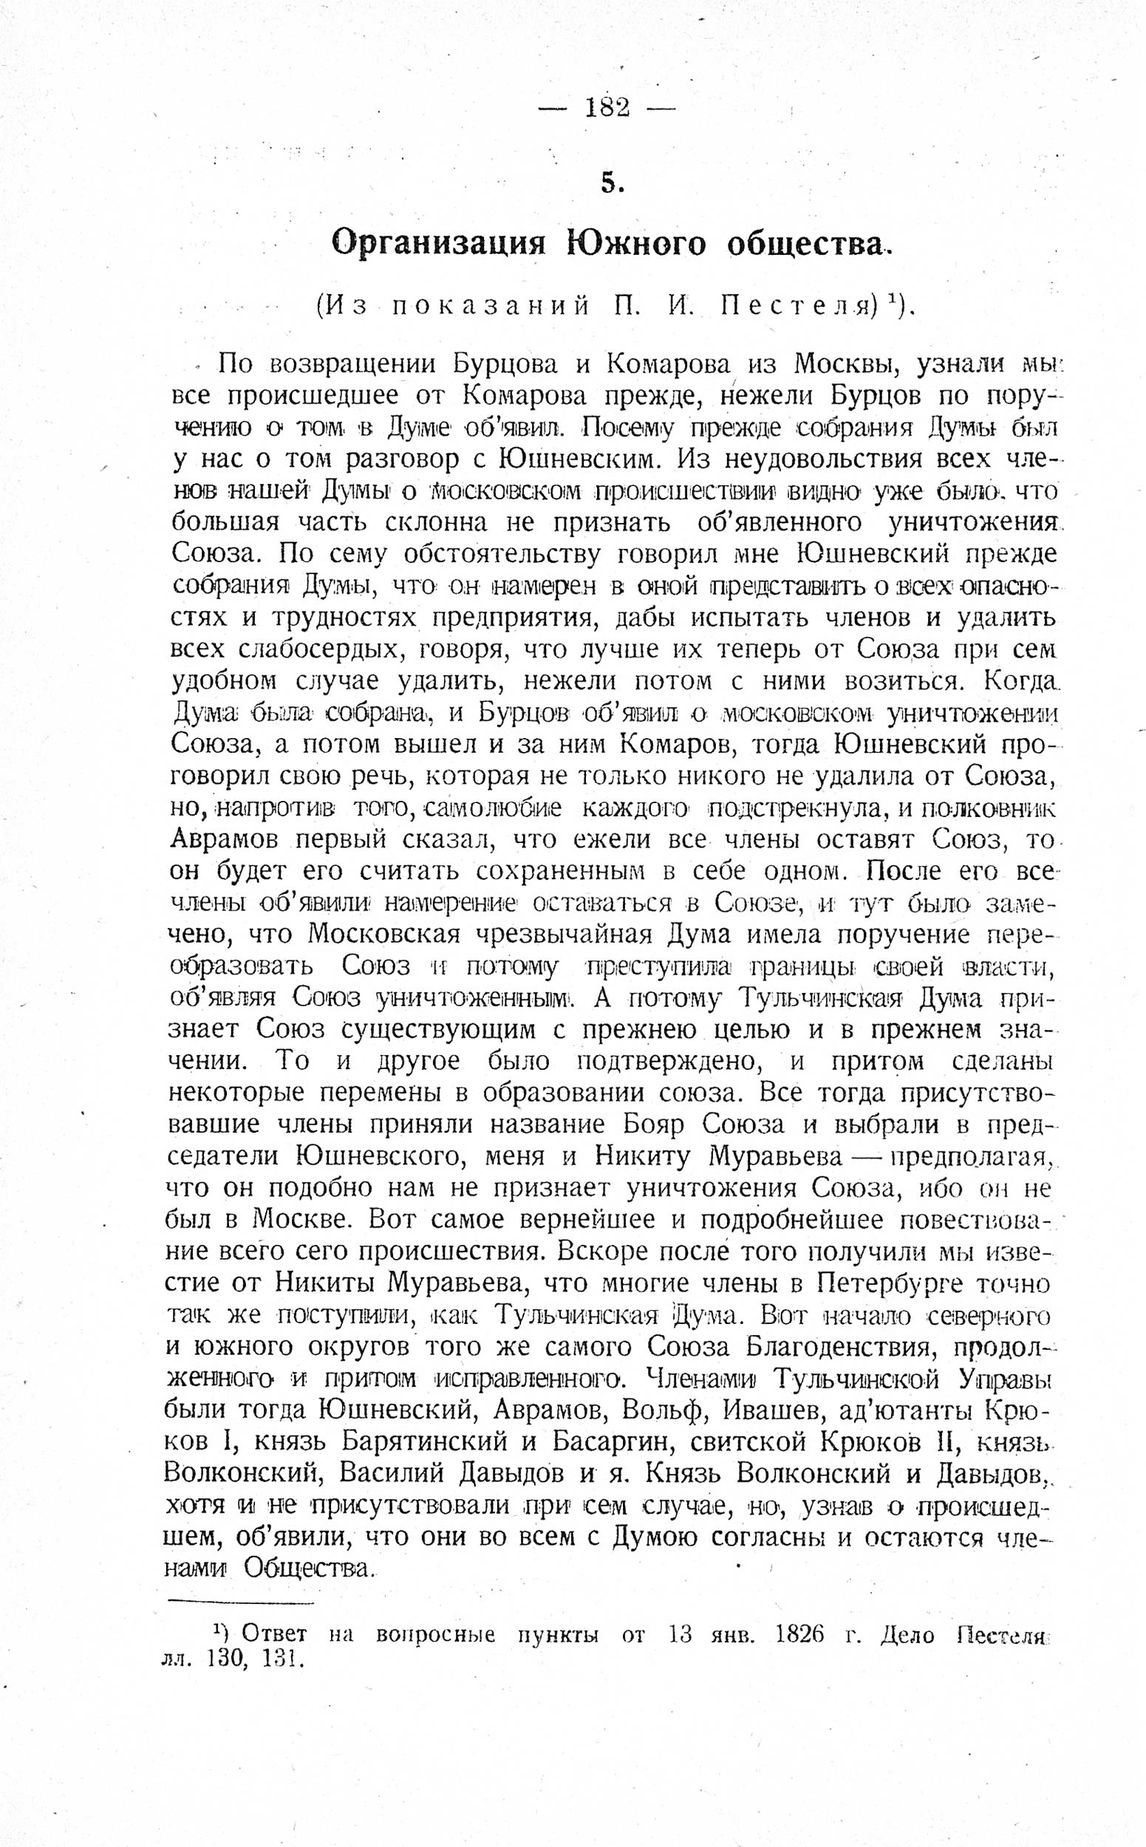 http://elib.shpl.ru/pages/625765/zooms/7